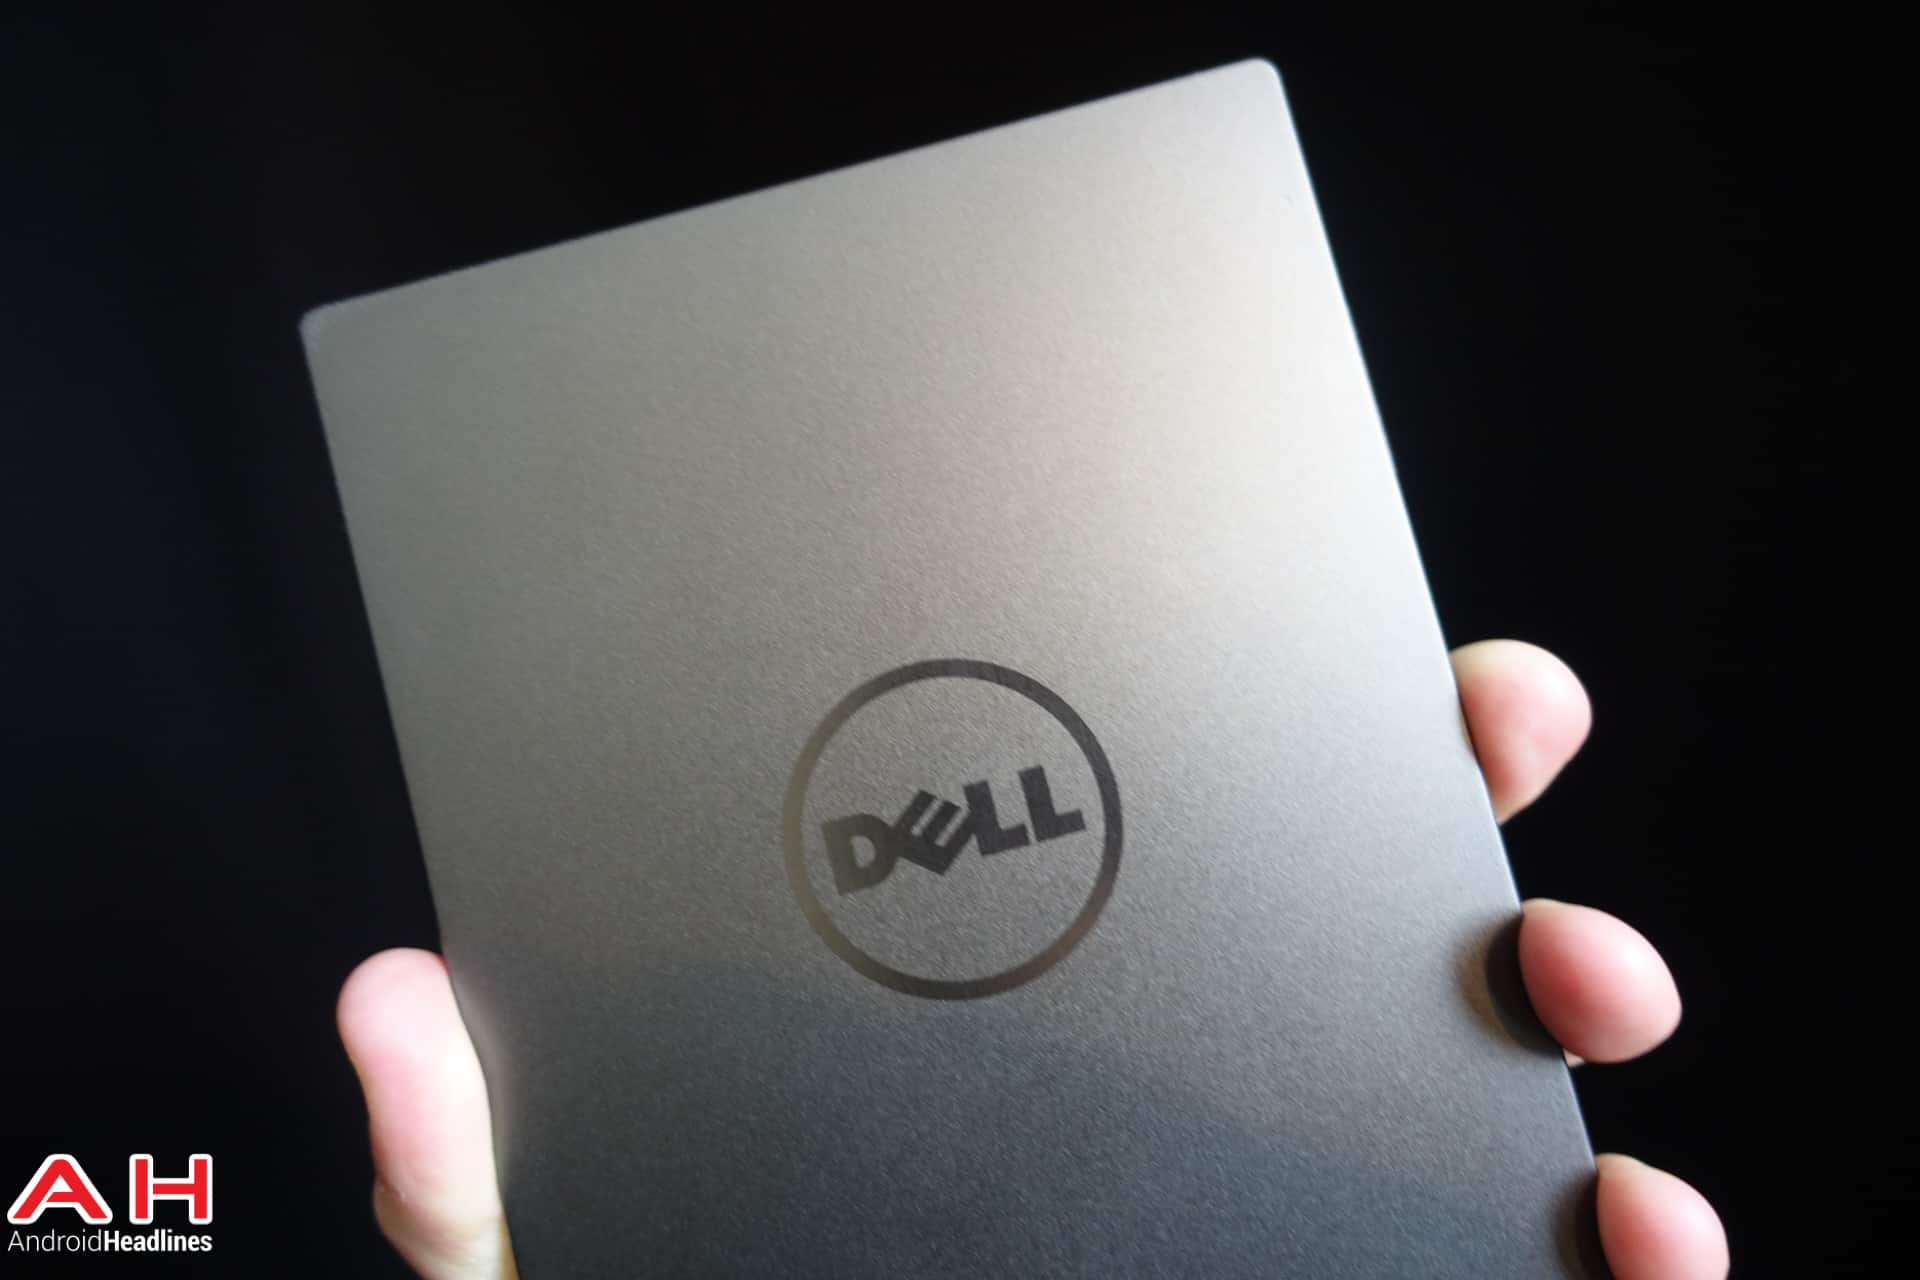 Dell-Venue-8-7840-AH-03548